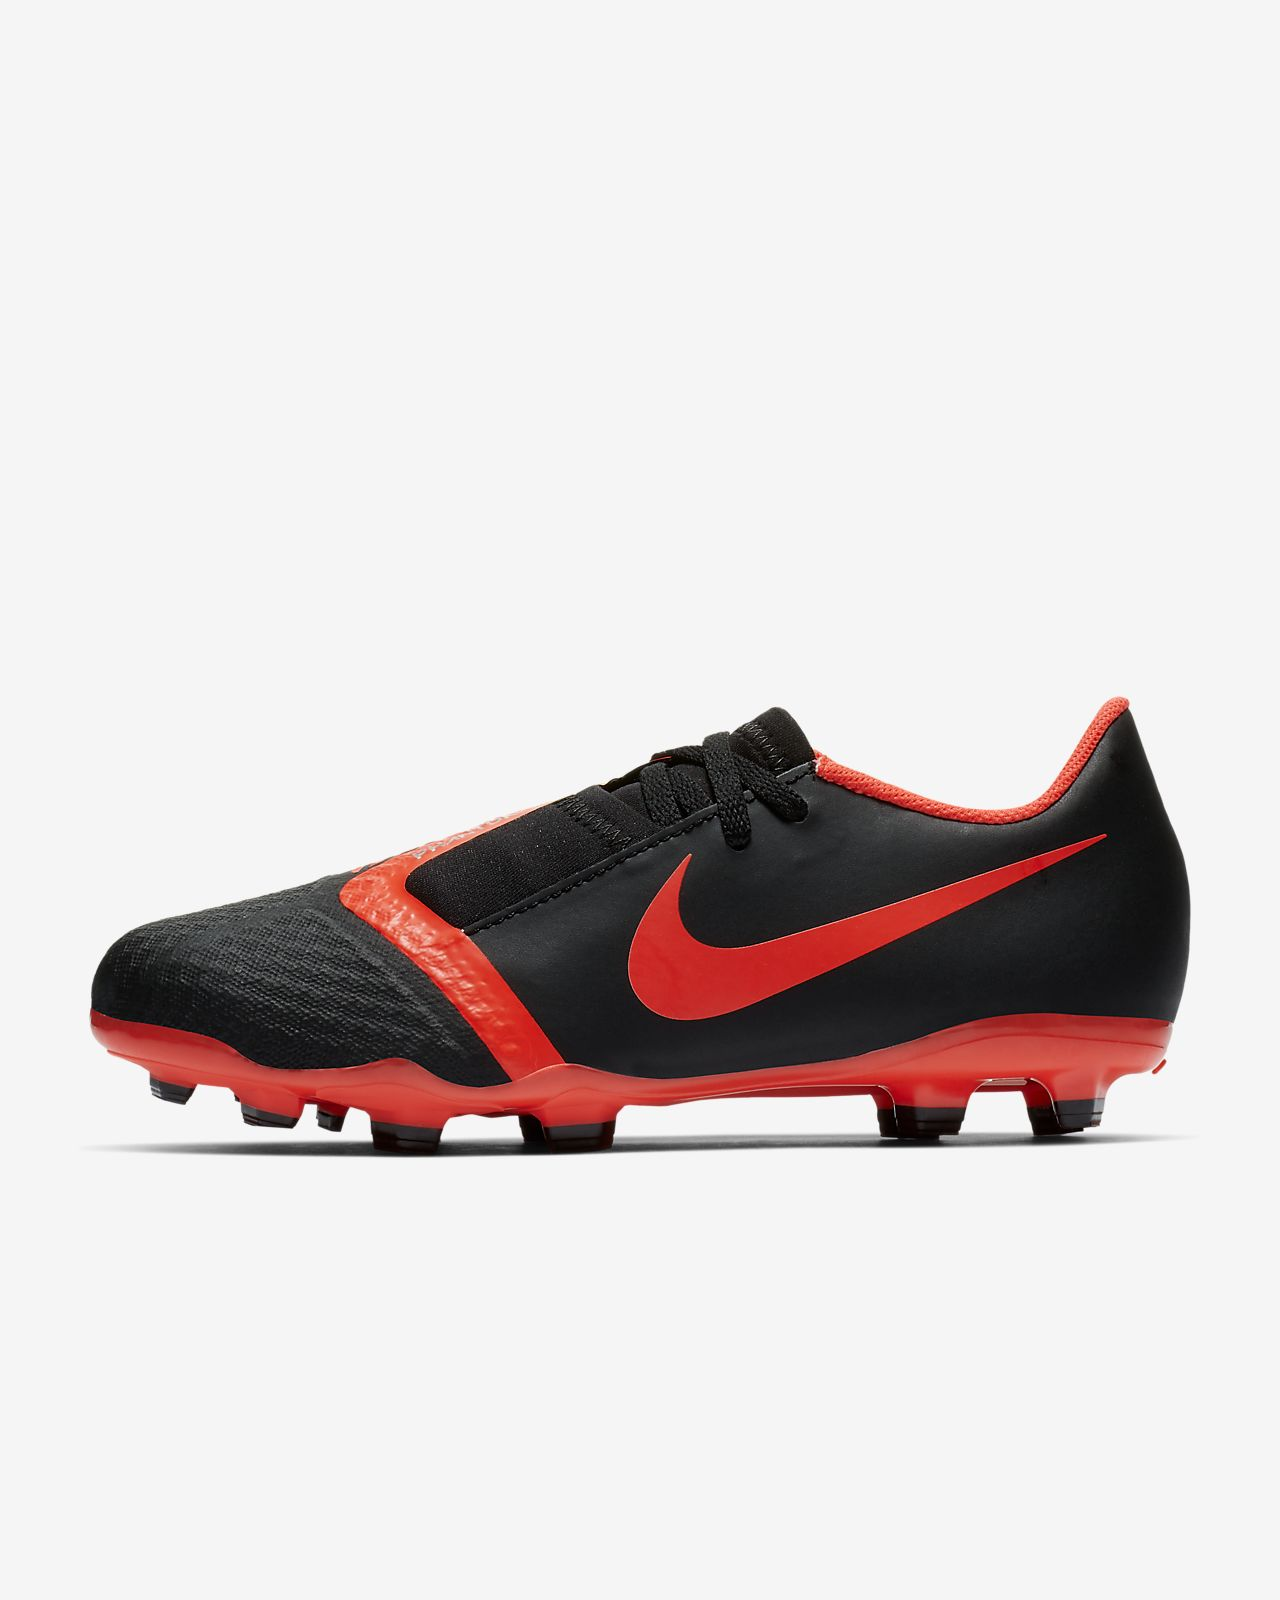 Nike Jr. Phantom Venom Academy FG Older Kids' Firm-Ground Football Boot